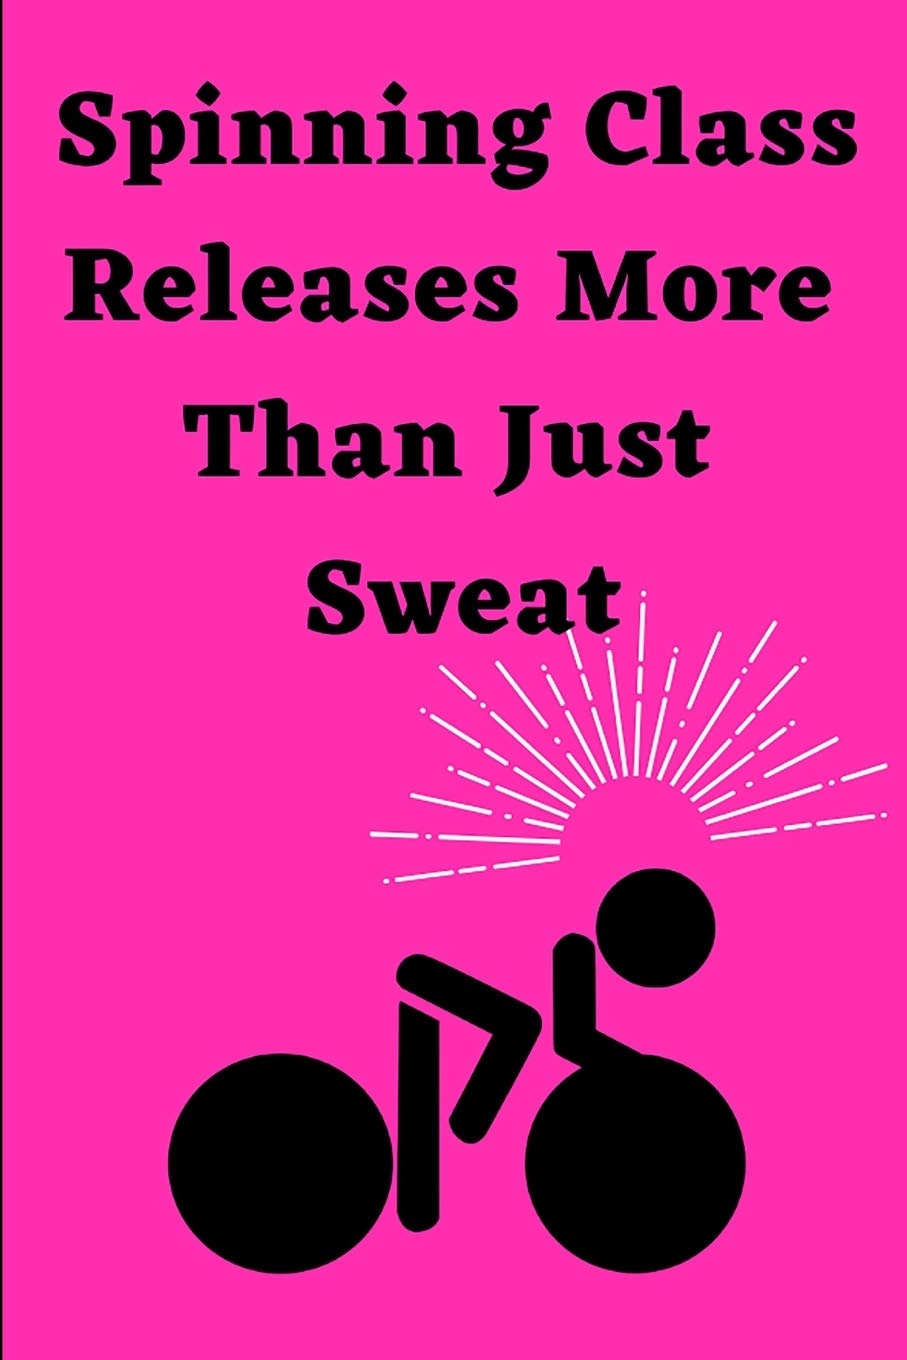 Spinning Class Releases More Than Just Sweat: Spin Class Journal ...